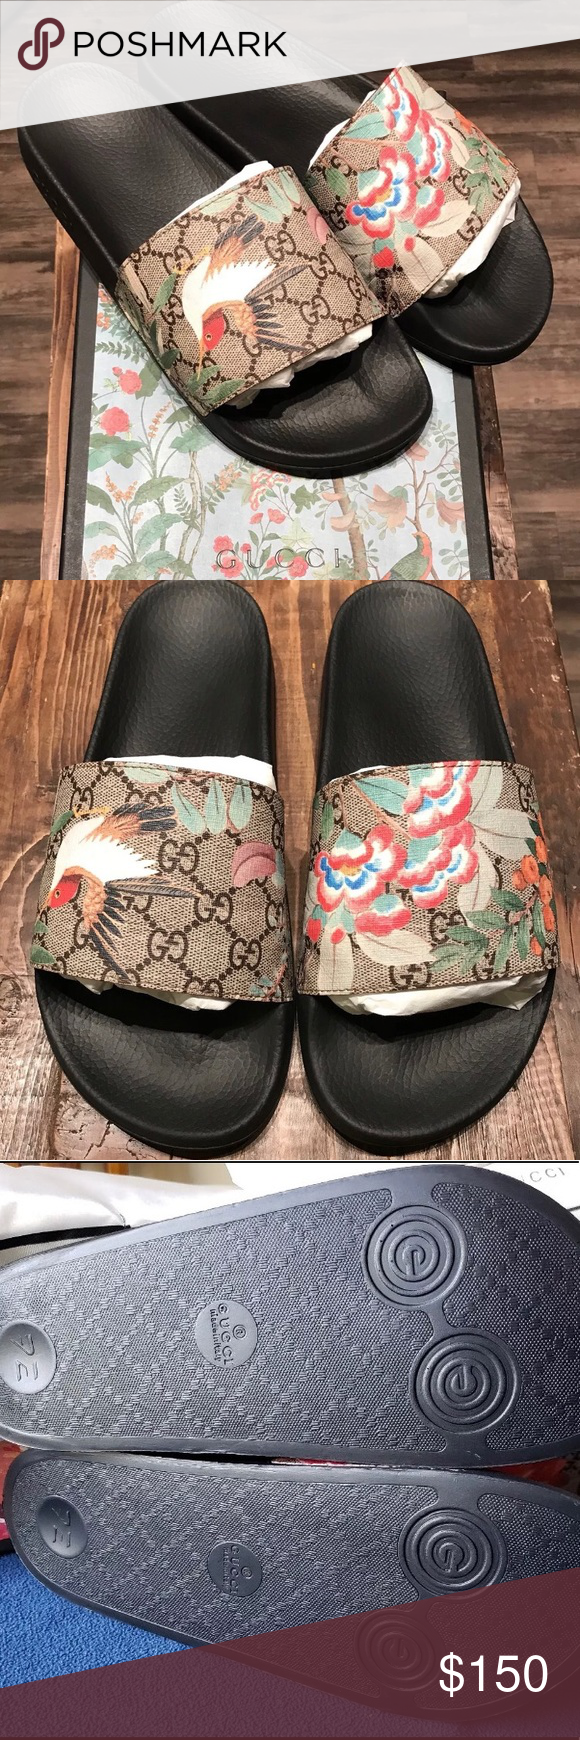 4796a2d56 Gucci Tian Slides Authentic Gucci Tian Slides. Brand new with box and in  perfect condition. Size 10. Shoes Sandals   Flip-Flops